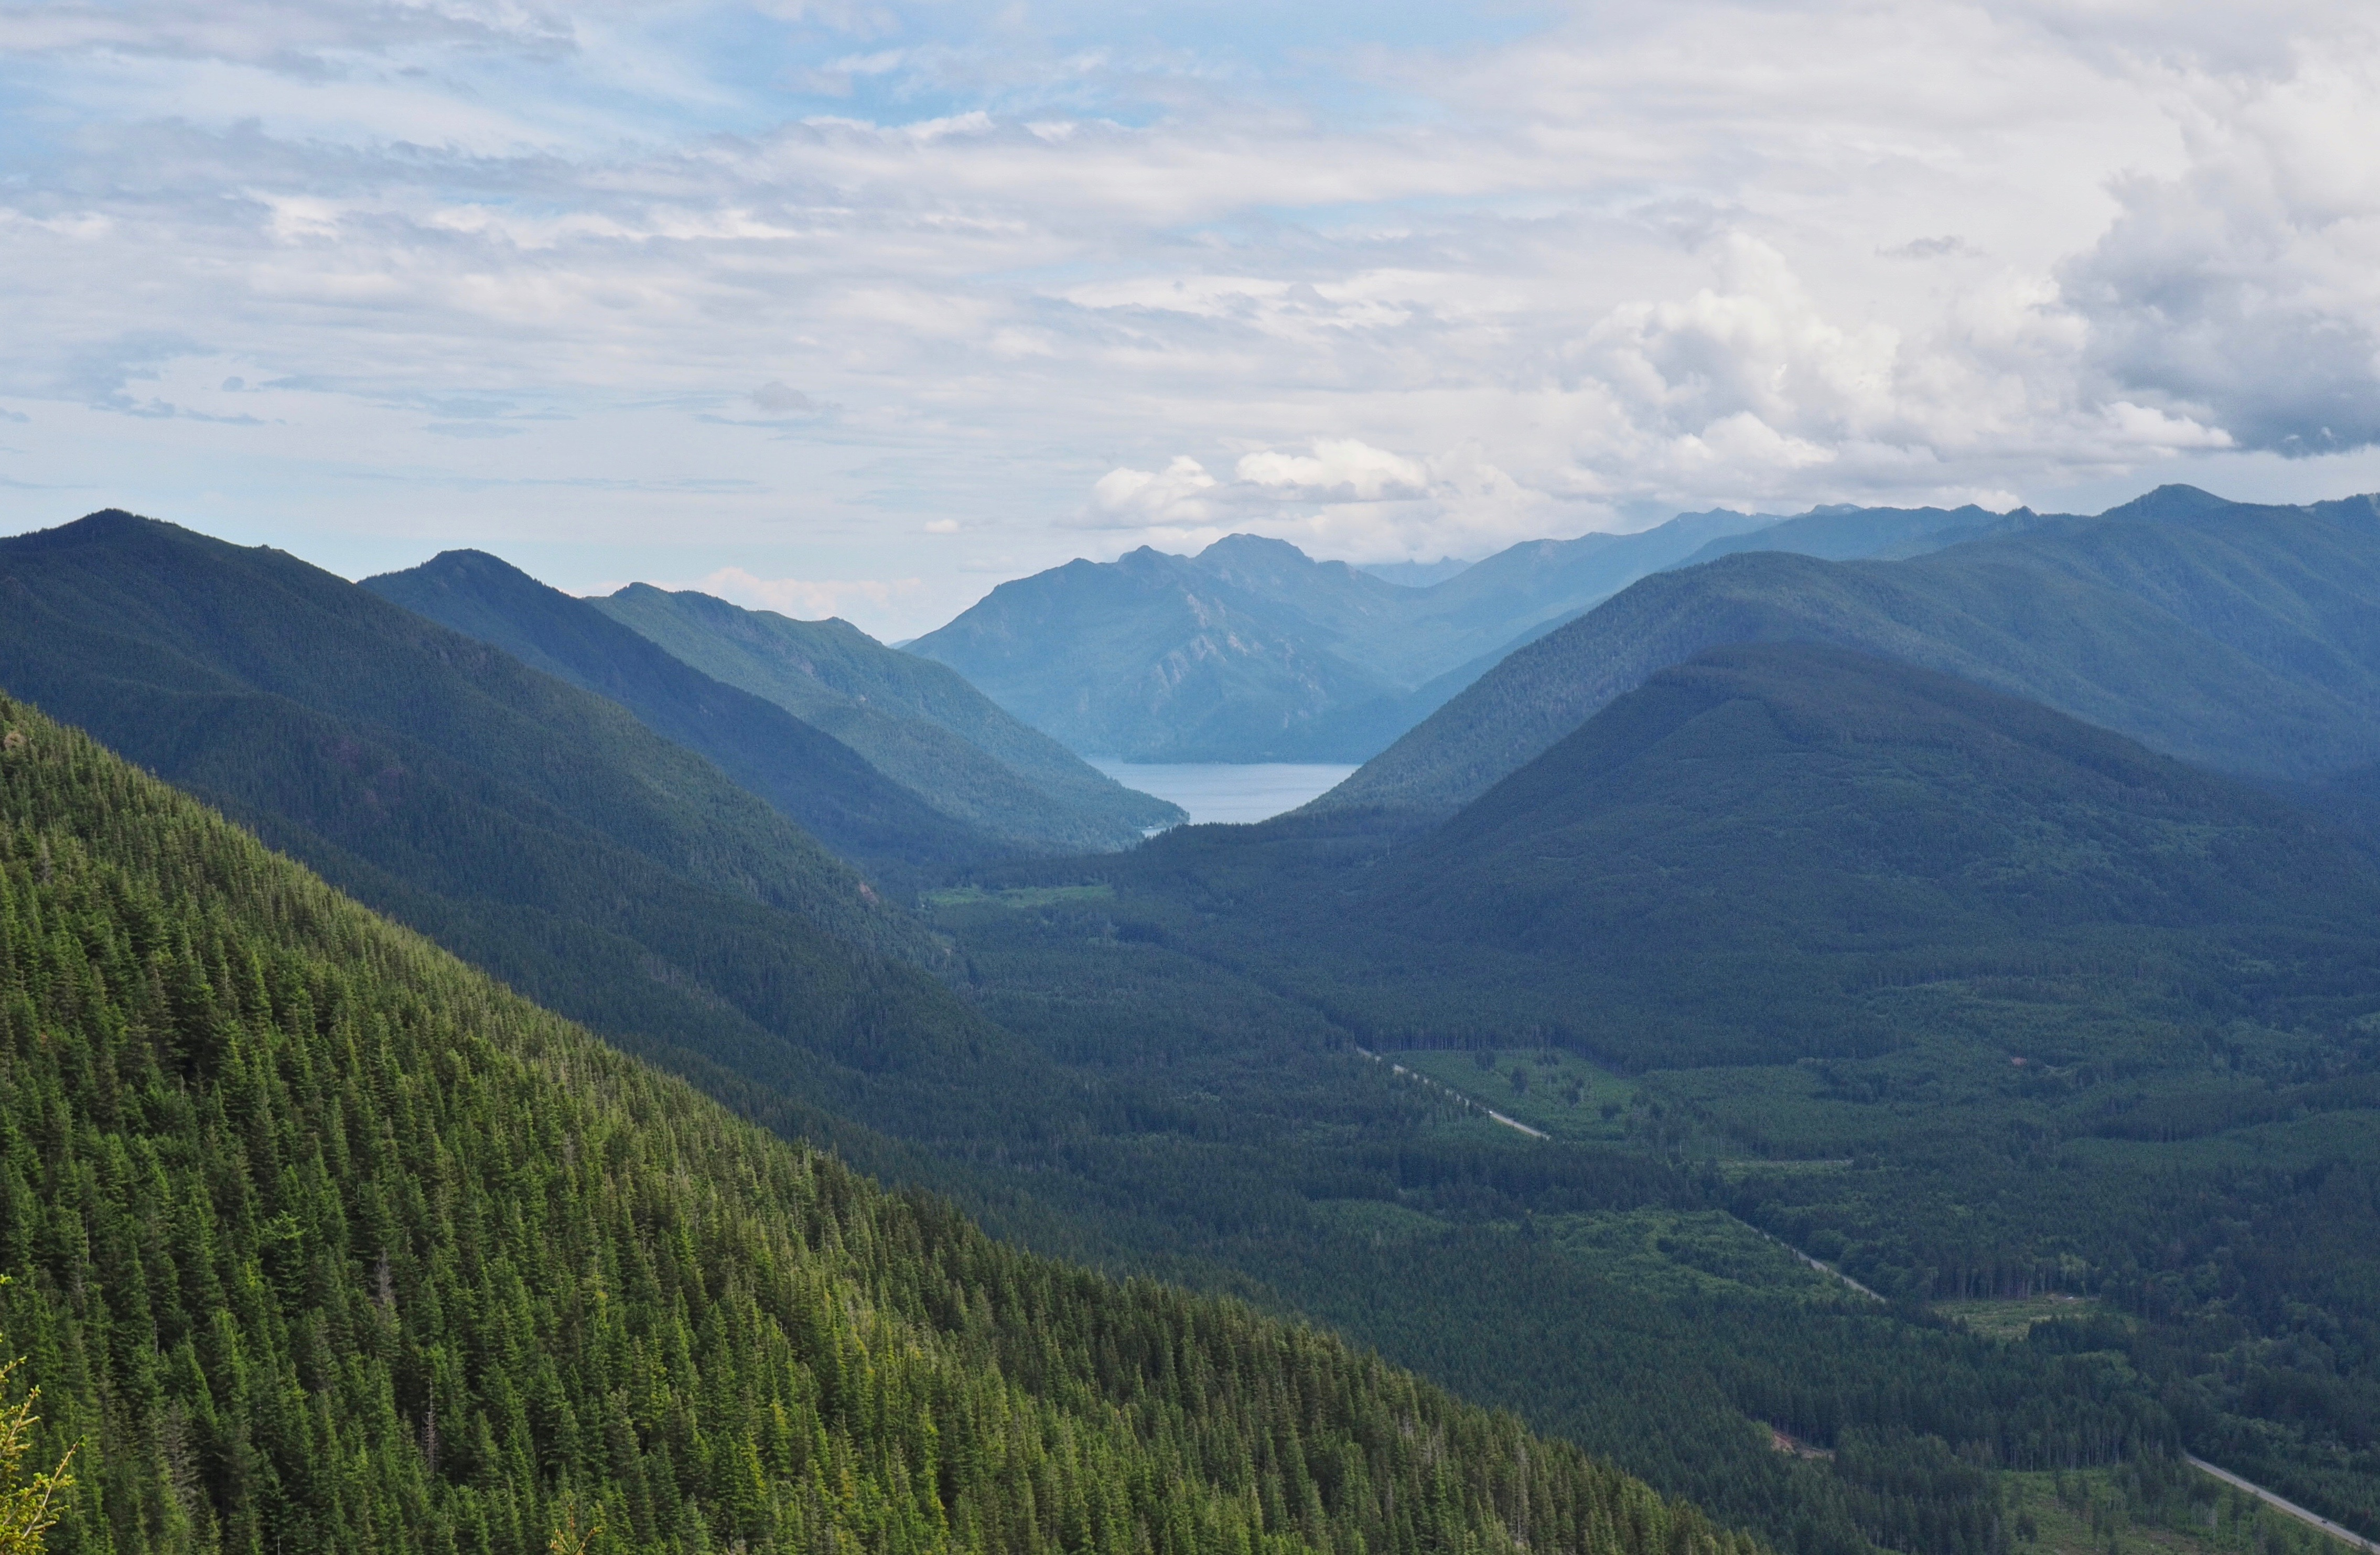 In the lookout's eastern view, Lake Crescent lies cradled in its mountain fold. Mount Muller lies midway down the ridge on the left and can be reached by taking the Snyder Ridge Trail from the North Point Loop that begins just below Kloshe Nanitch. Kloshe Nanitch Trail, June 17, 2016.